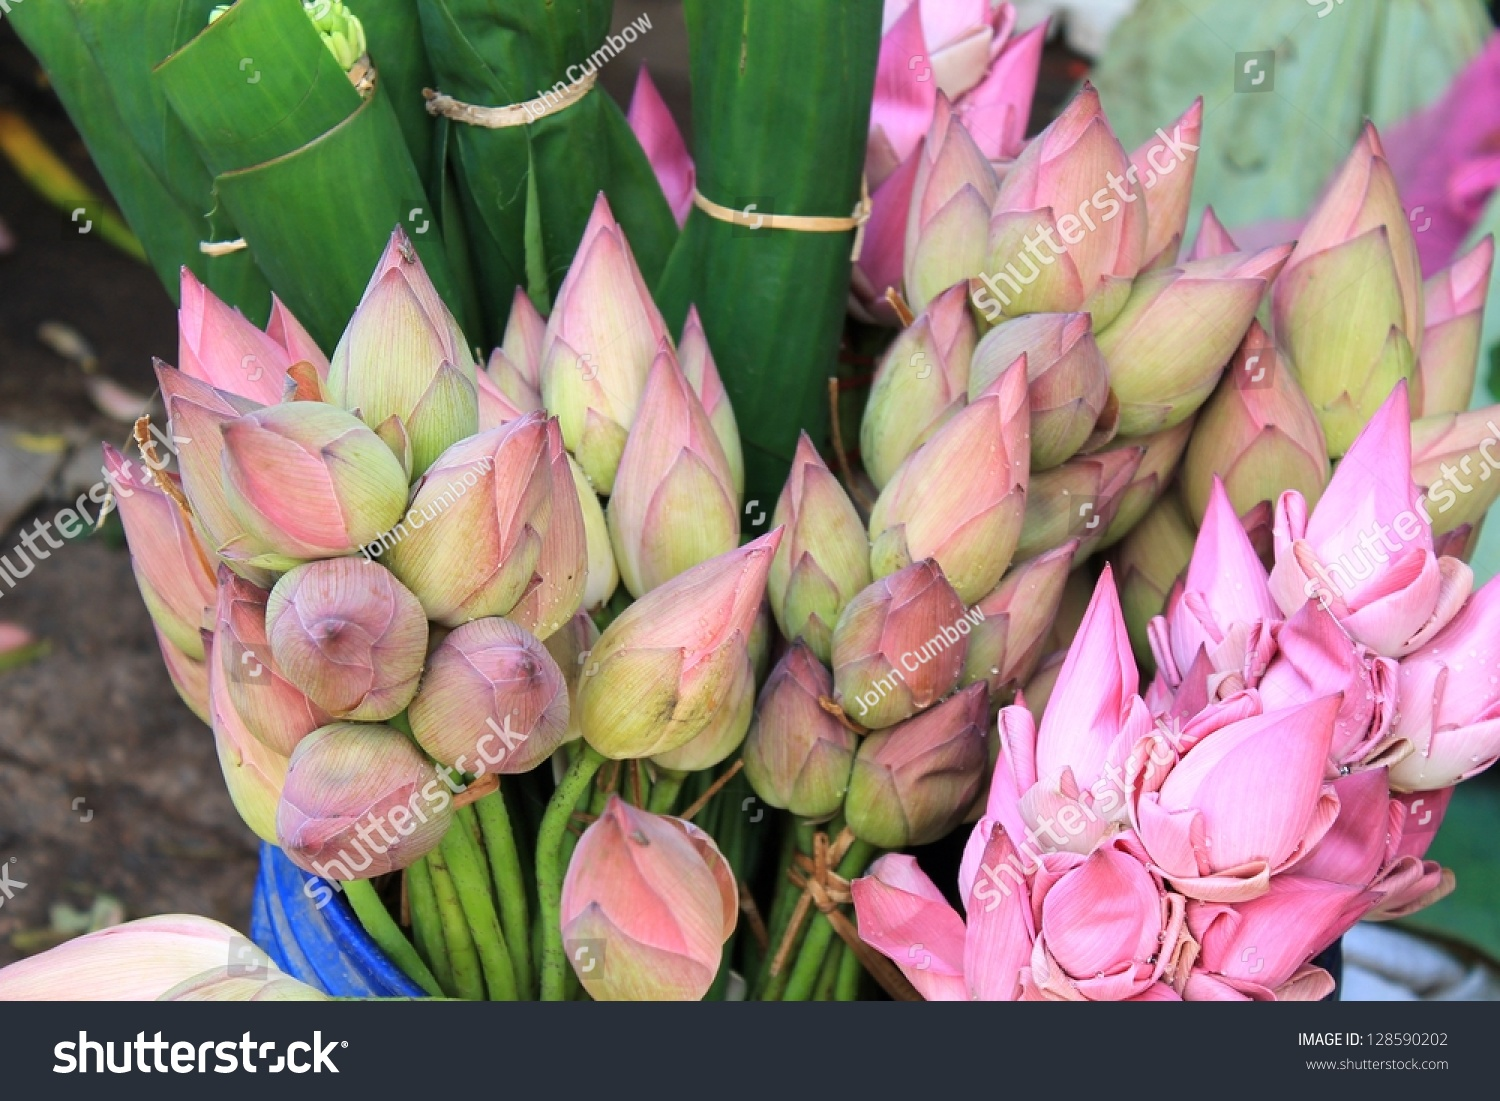 Bunches freshly cut lotus flowers sale stock photo edit now bunches of freshly cut lotus flowers for sale at the farmers market in battambang cambodia izmirmasajfo